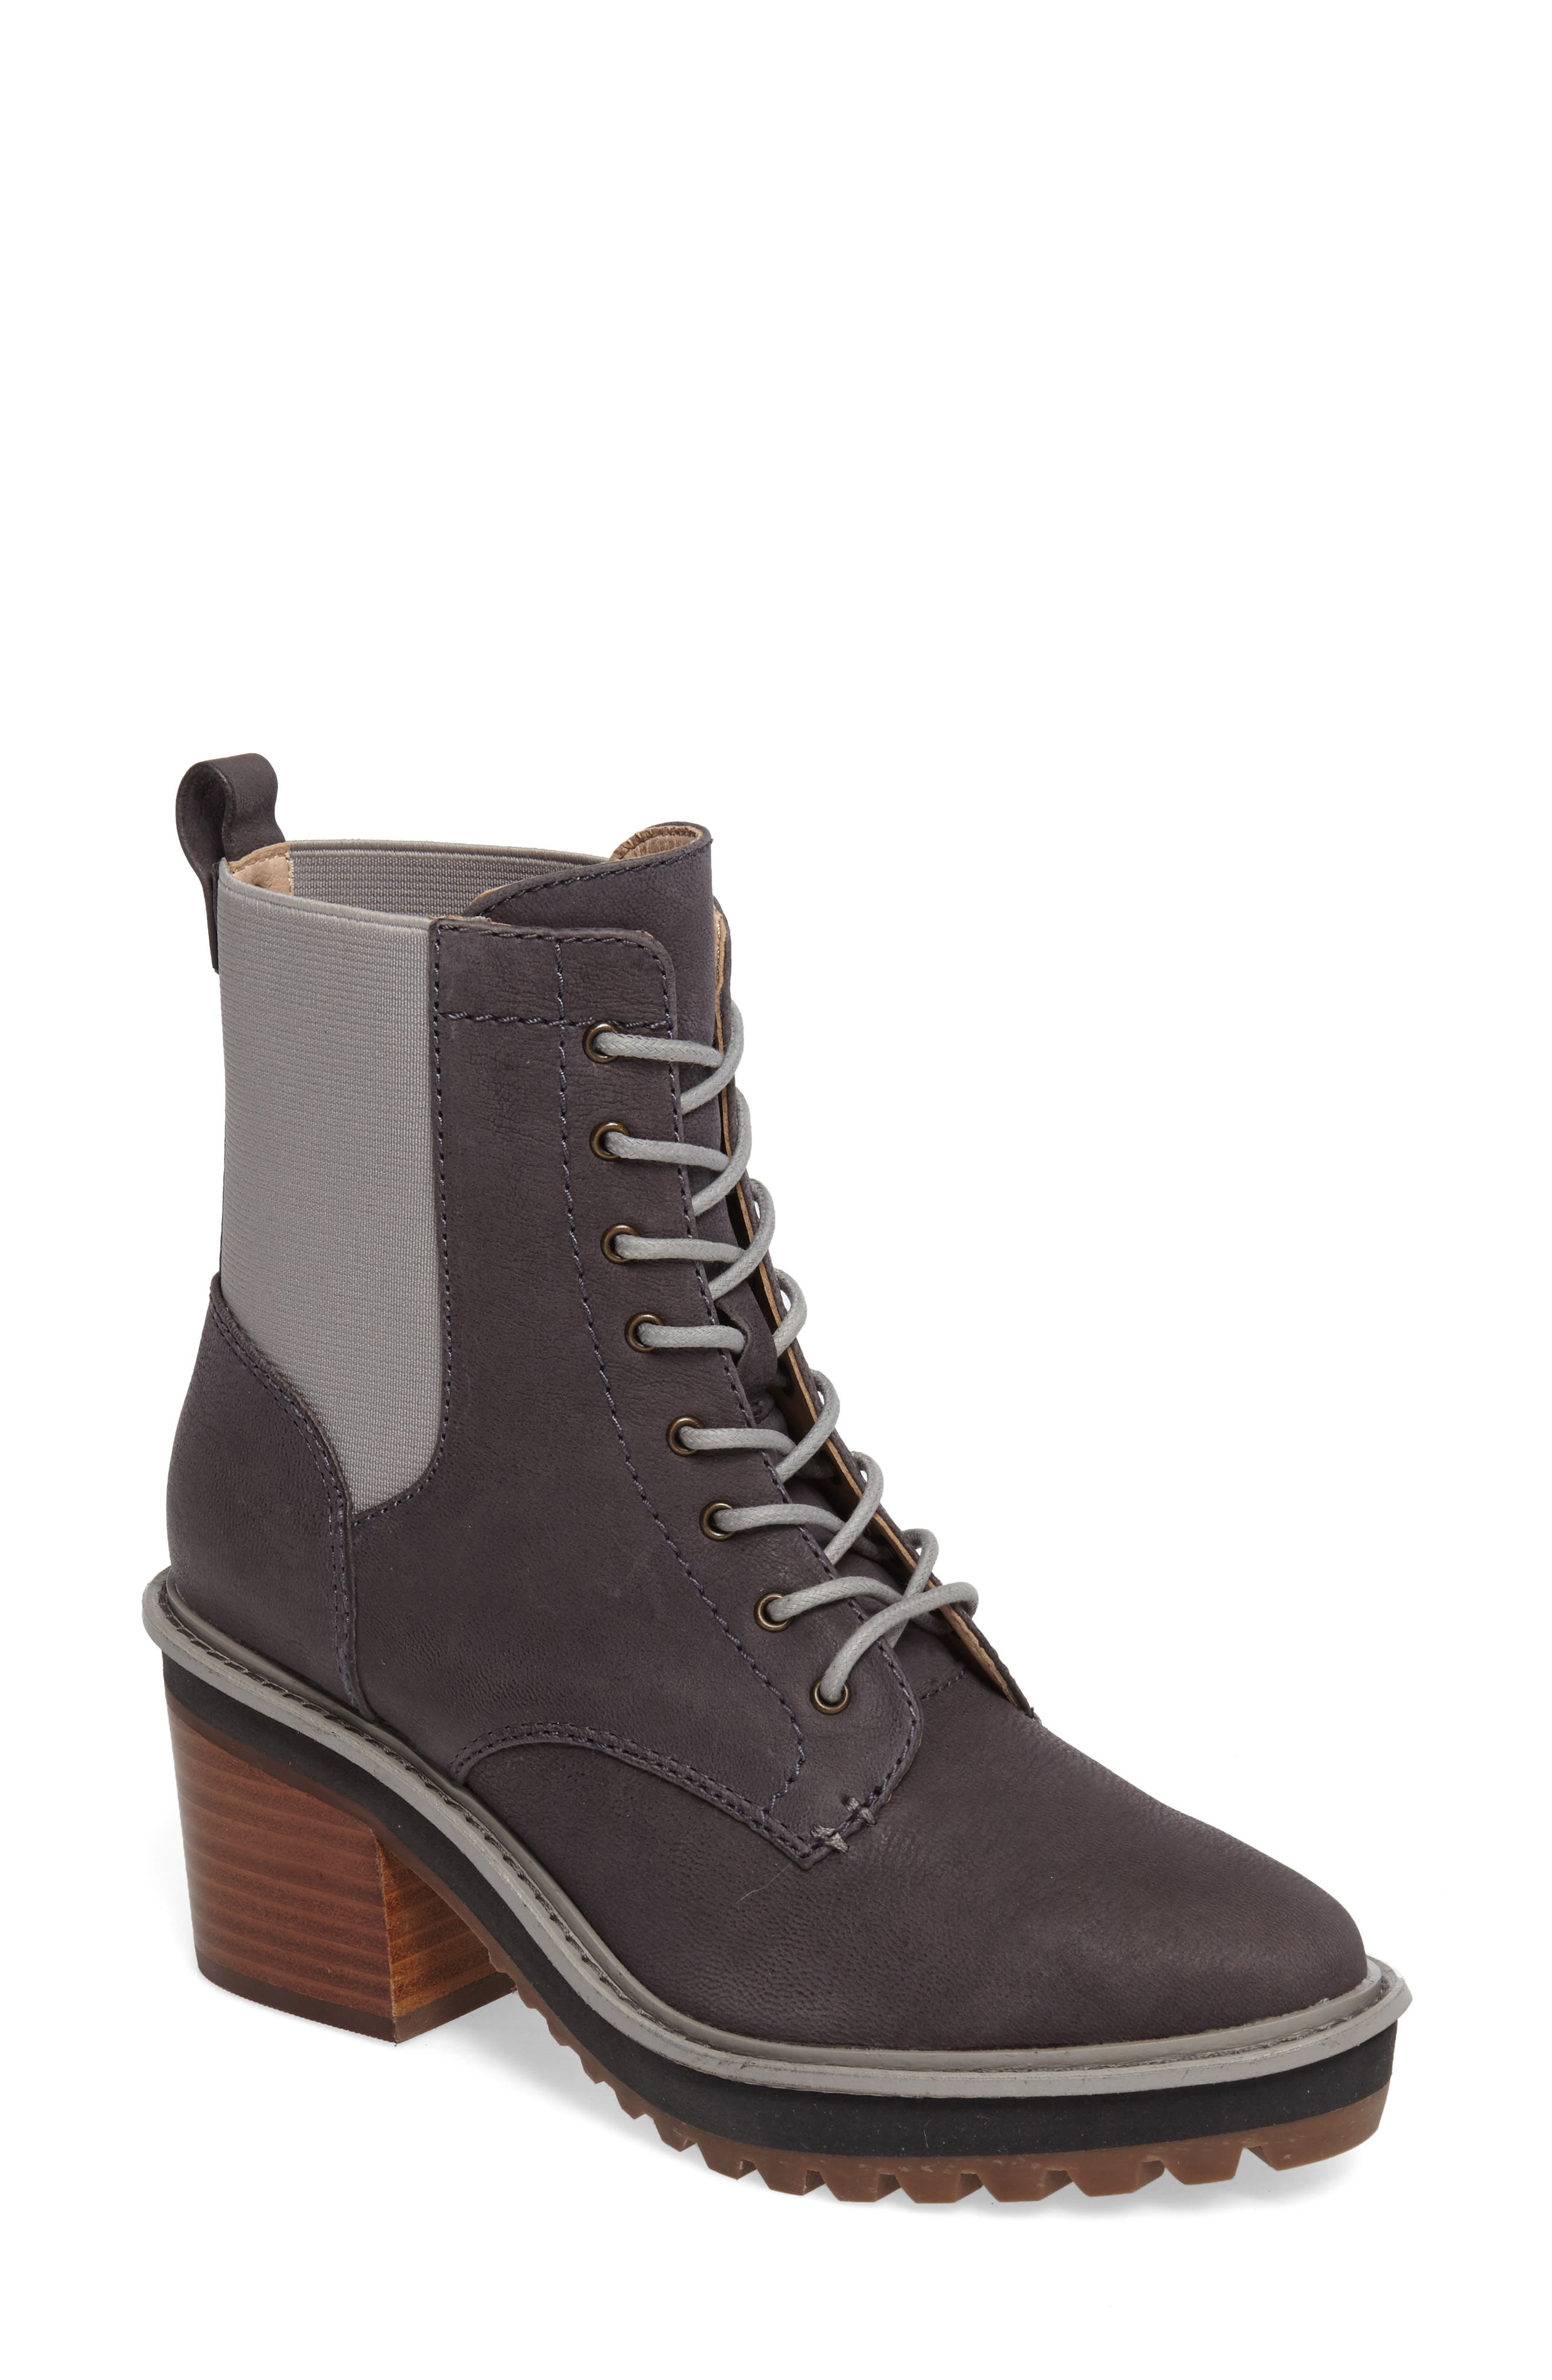 Parkway Lace-Up Bootie,                         Main,                         color, 020